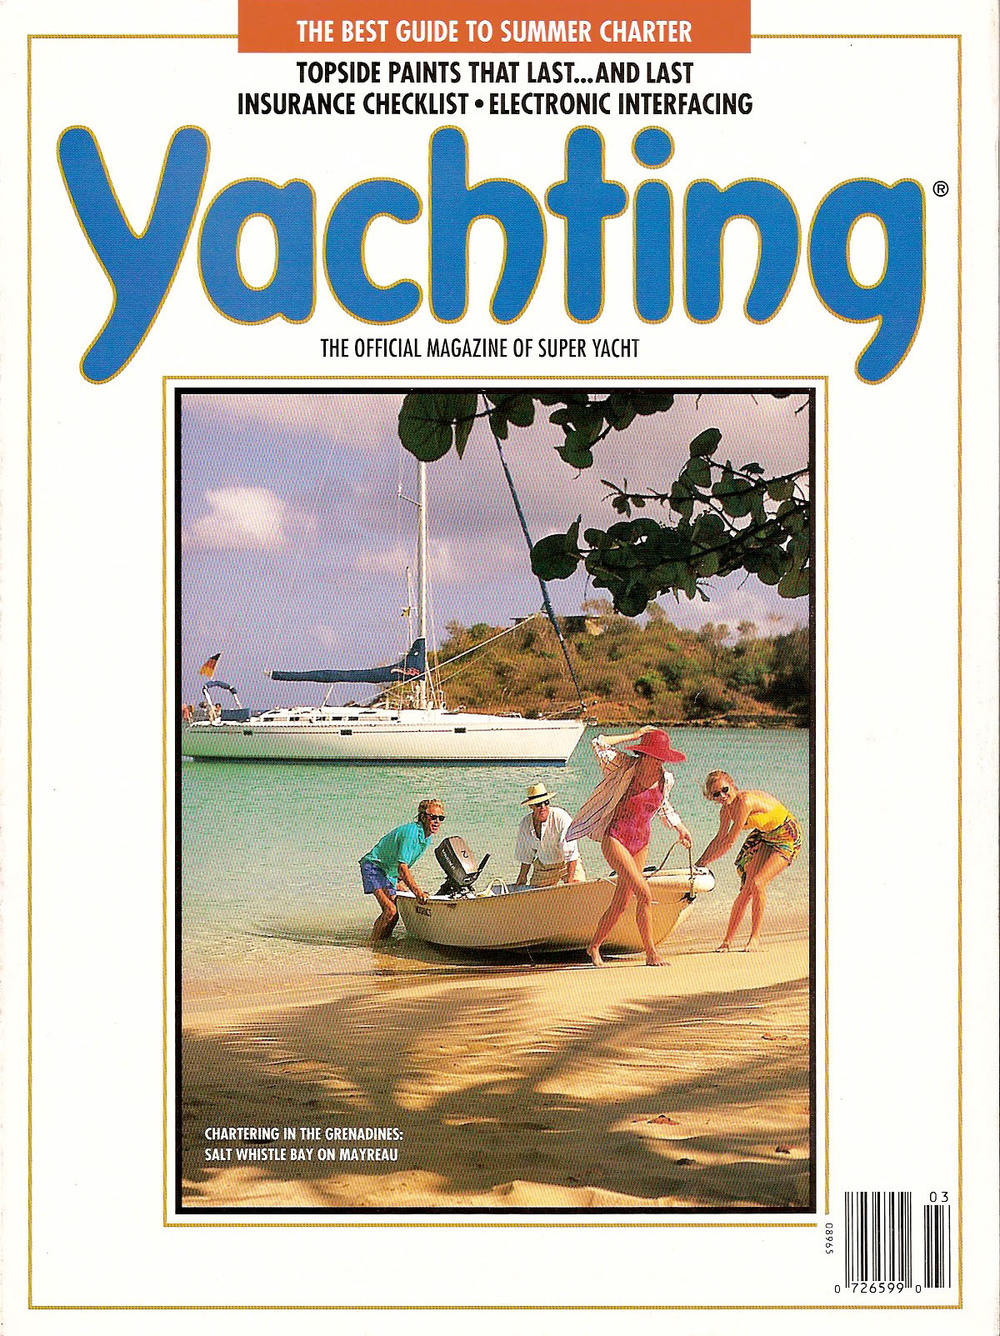 yachting cover 3-93.large.jpg